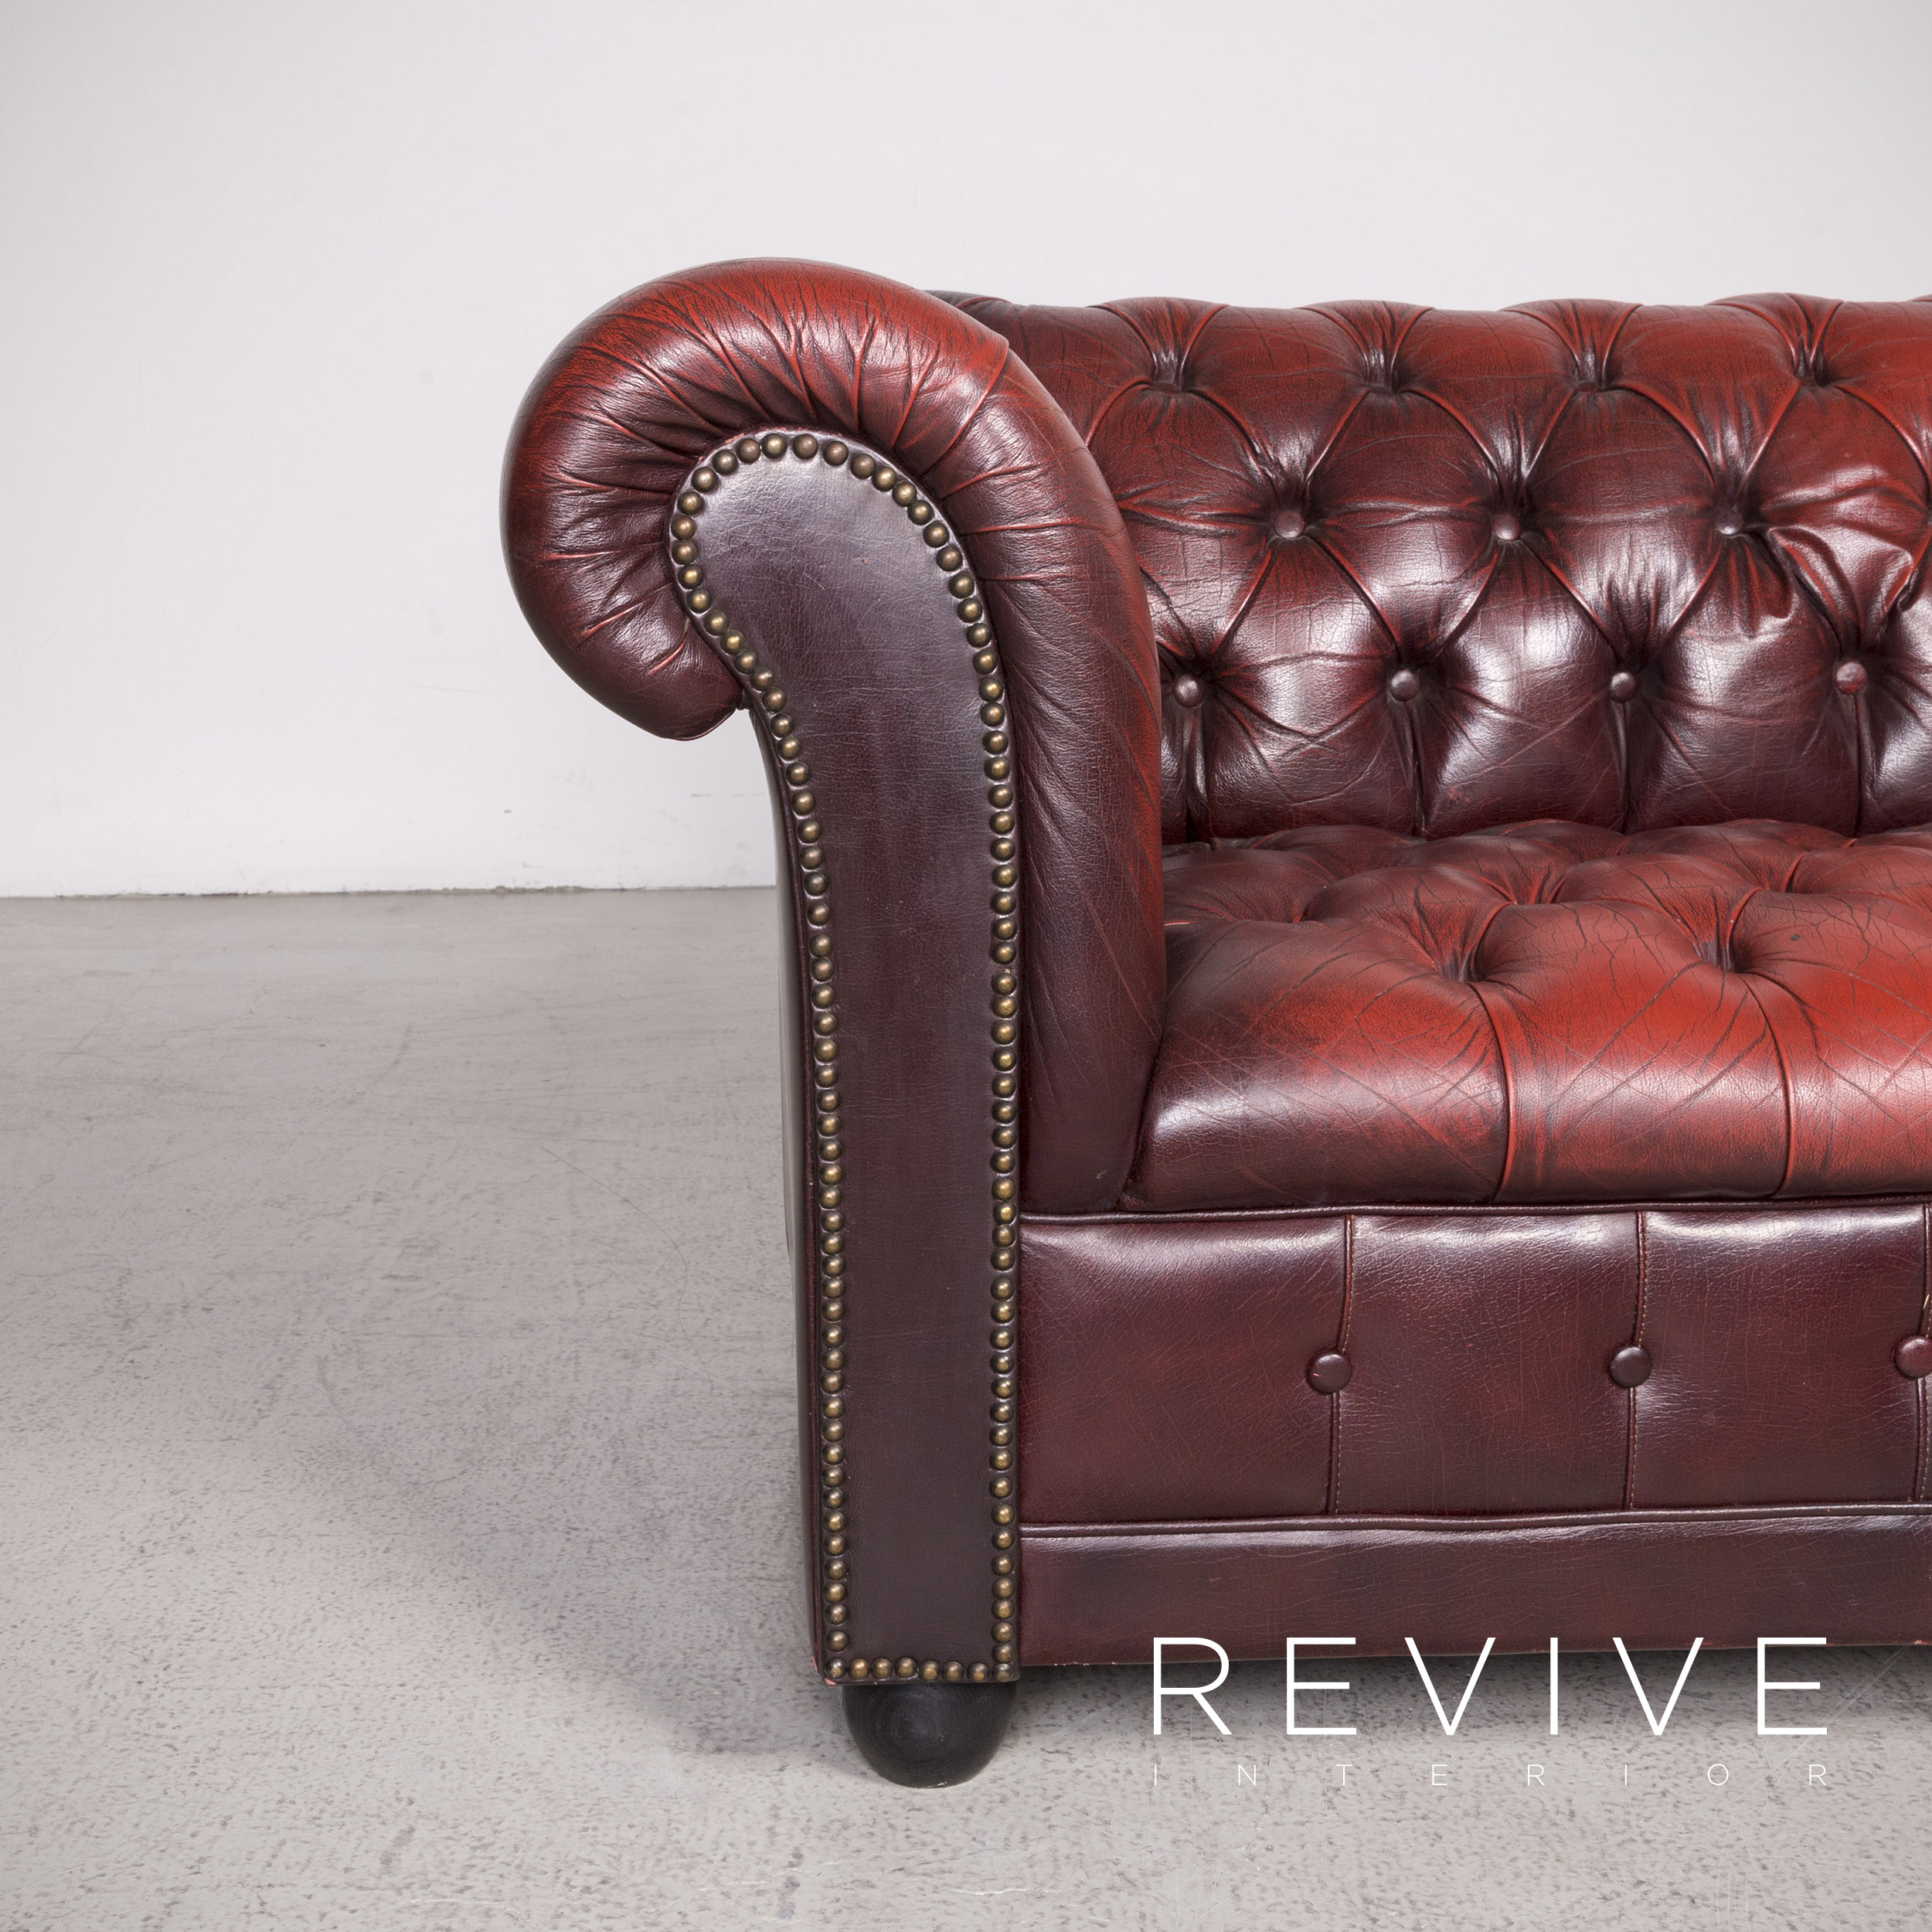 chesterfield leather sofa red two seater real leather vintage retro 8394 ebay